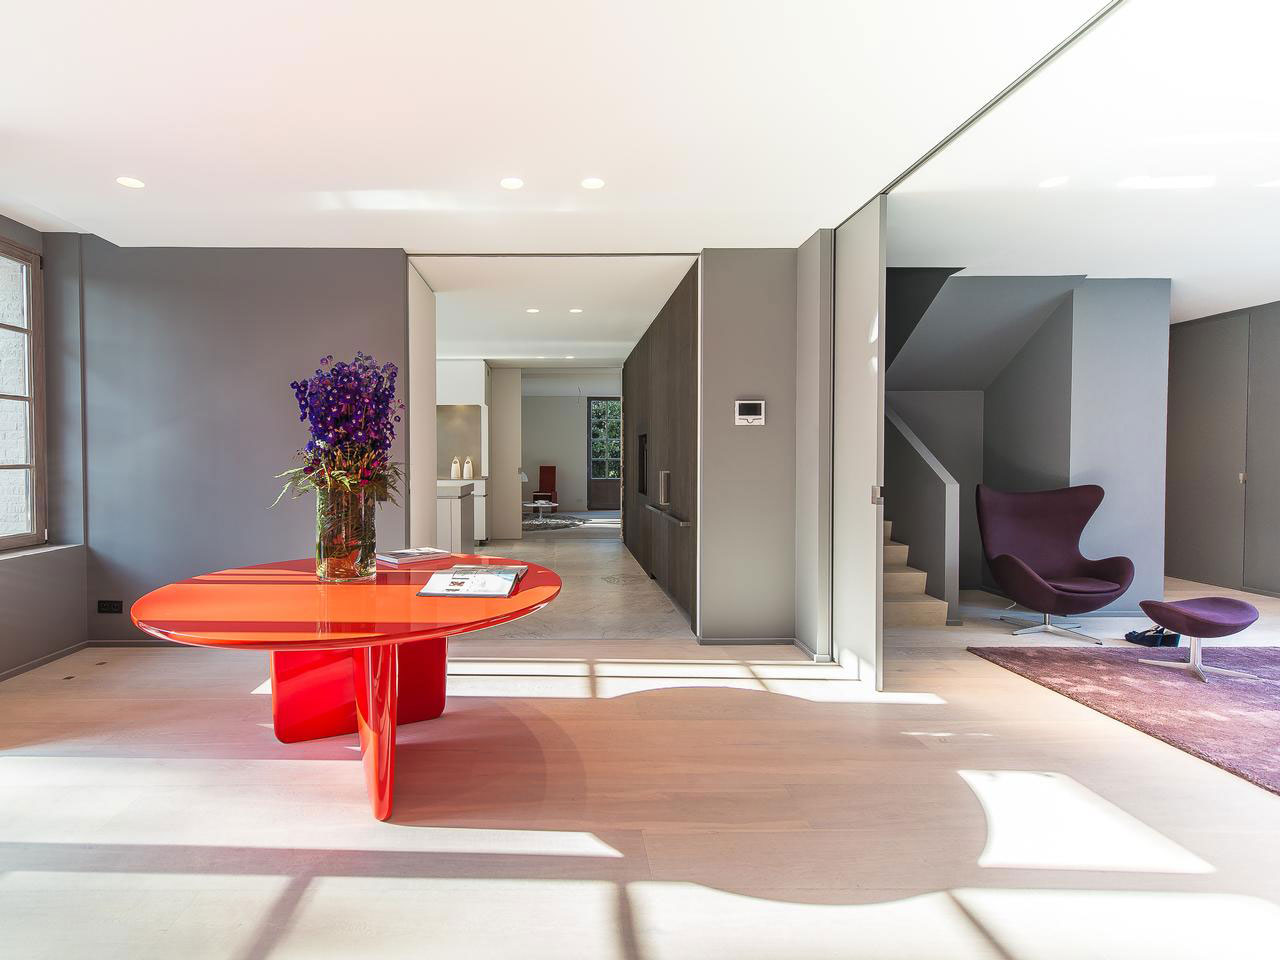 Bright Orange Table, House Renovation in Sint-Genesius-Rode, Belgium